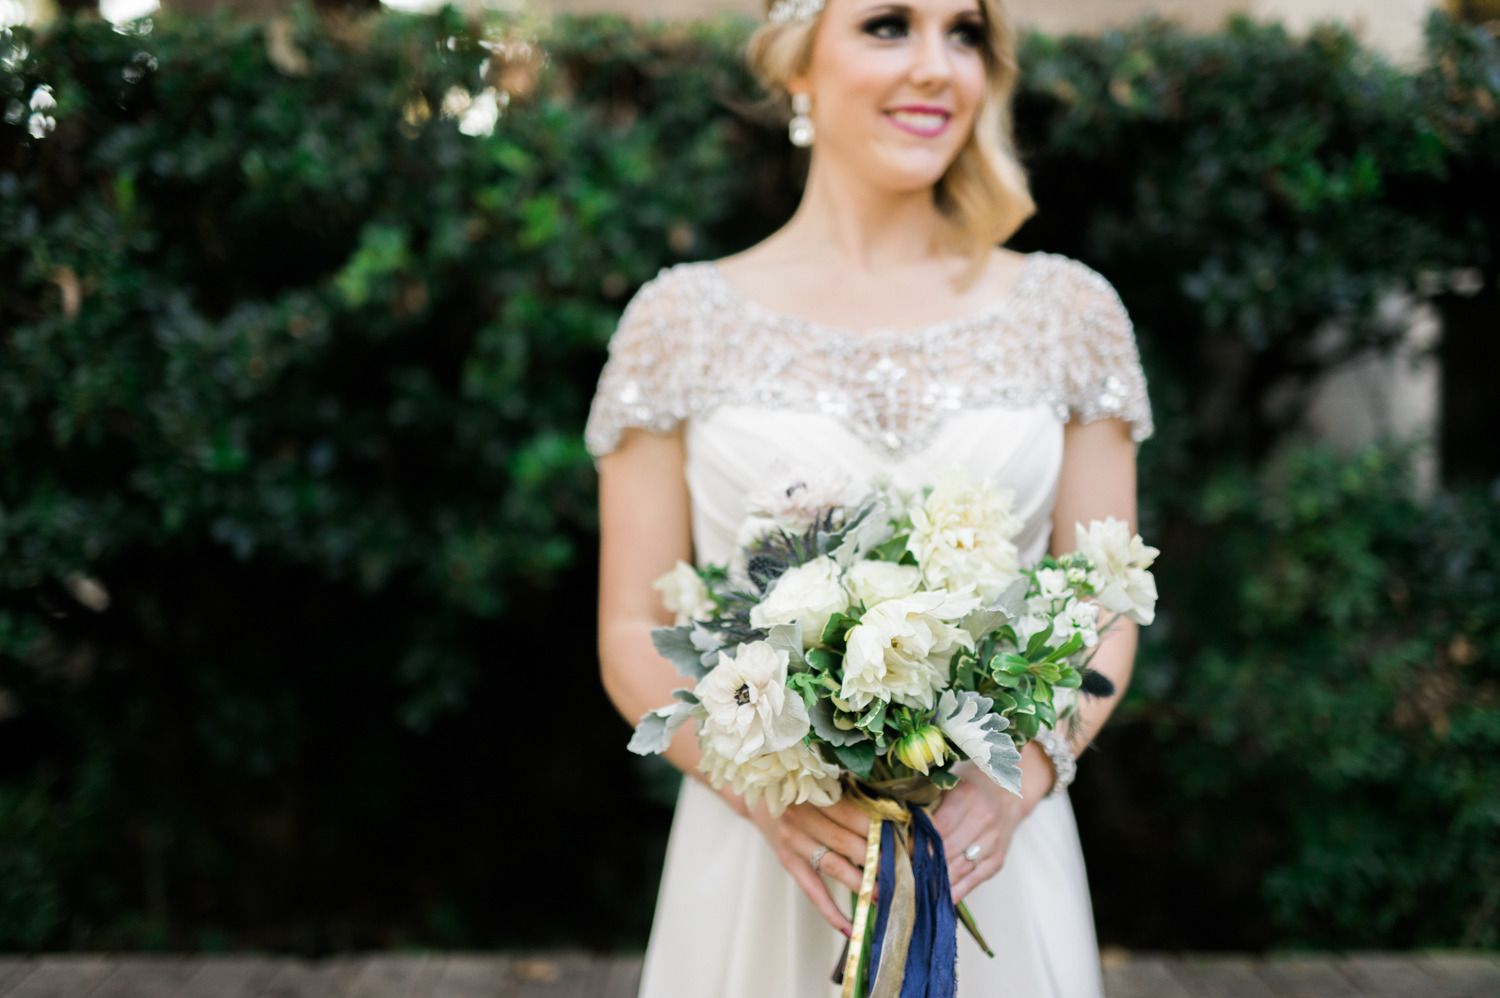 Photography: Anna Smith Photography - www.annasmithphotography.com  Read More: http://www.stylemepretty.com/2014/12/31/great-gatsby-inspiration-shoot/